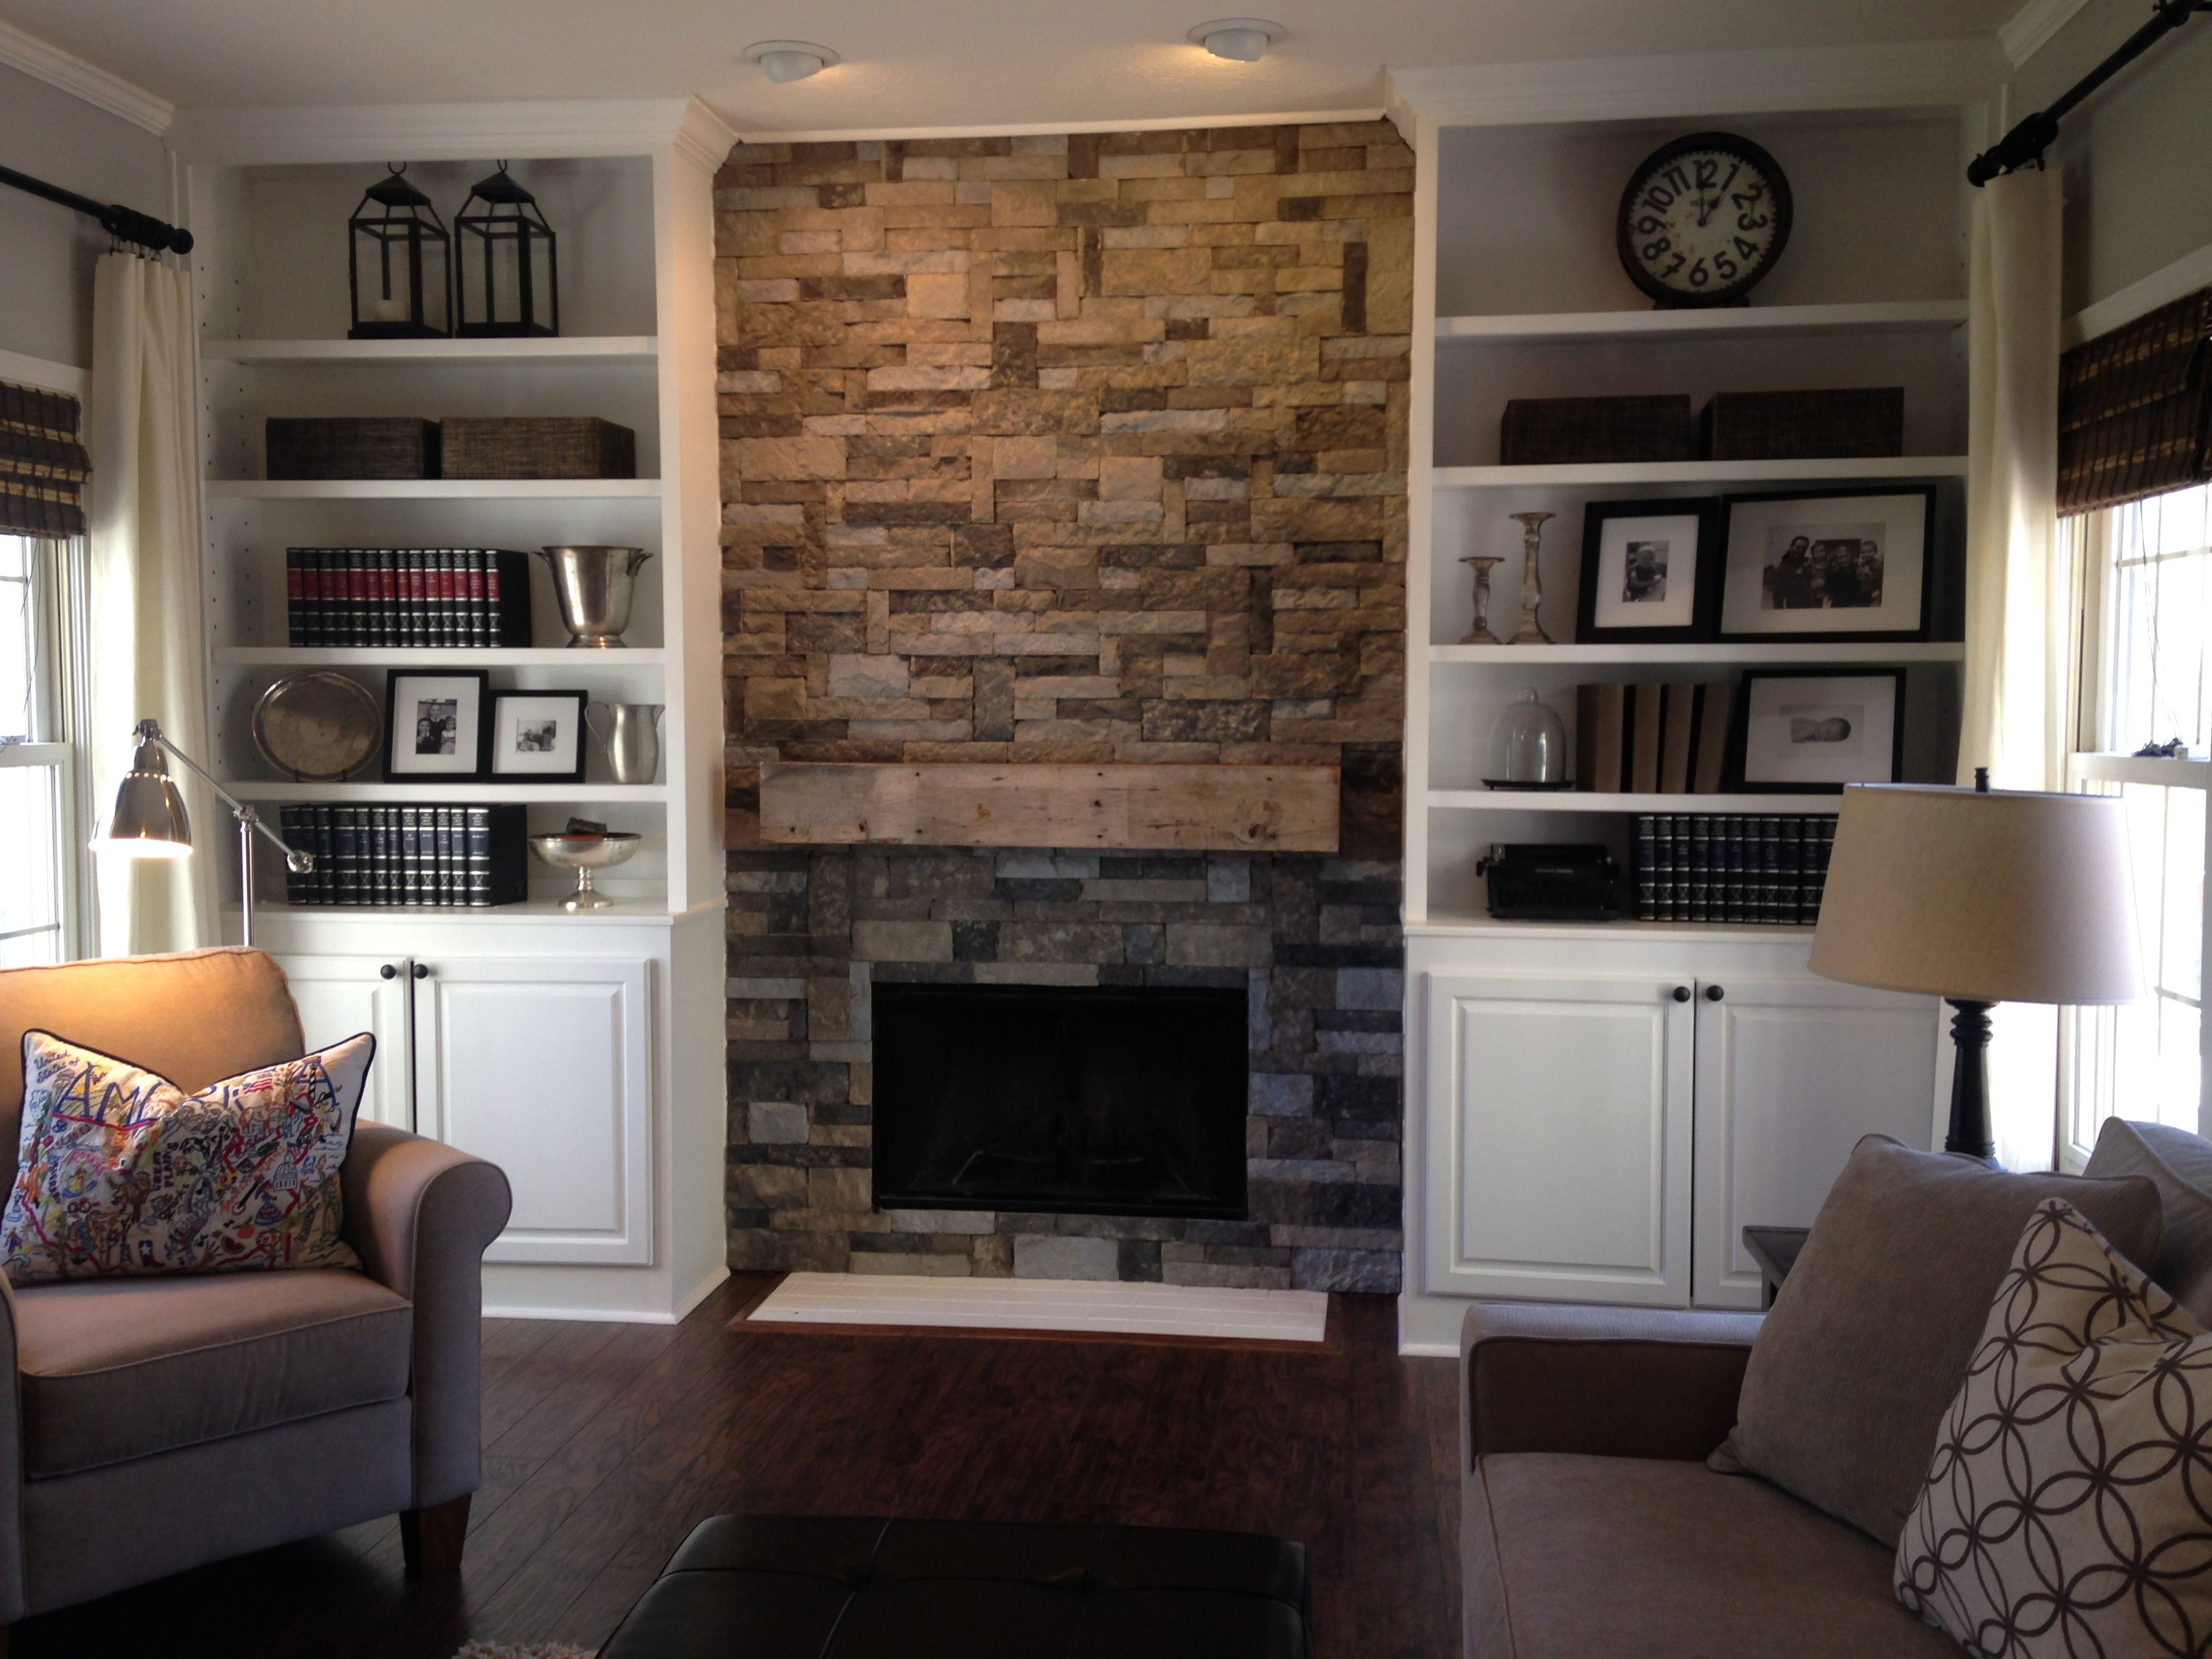 Airstone Fireplace In Spring Creek Color. Mantle Made From Barn Wood.